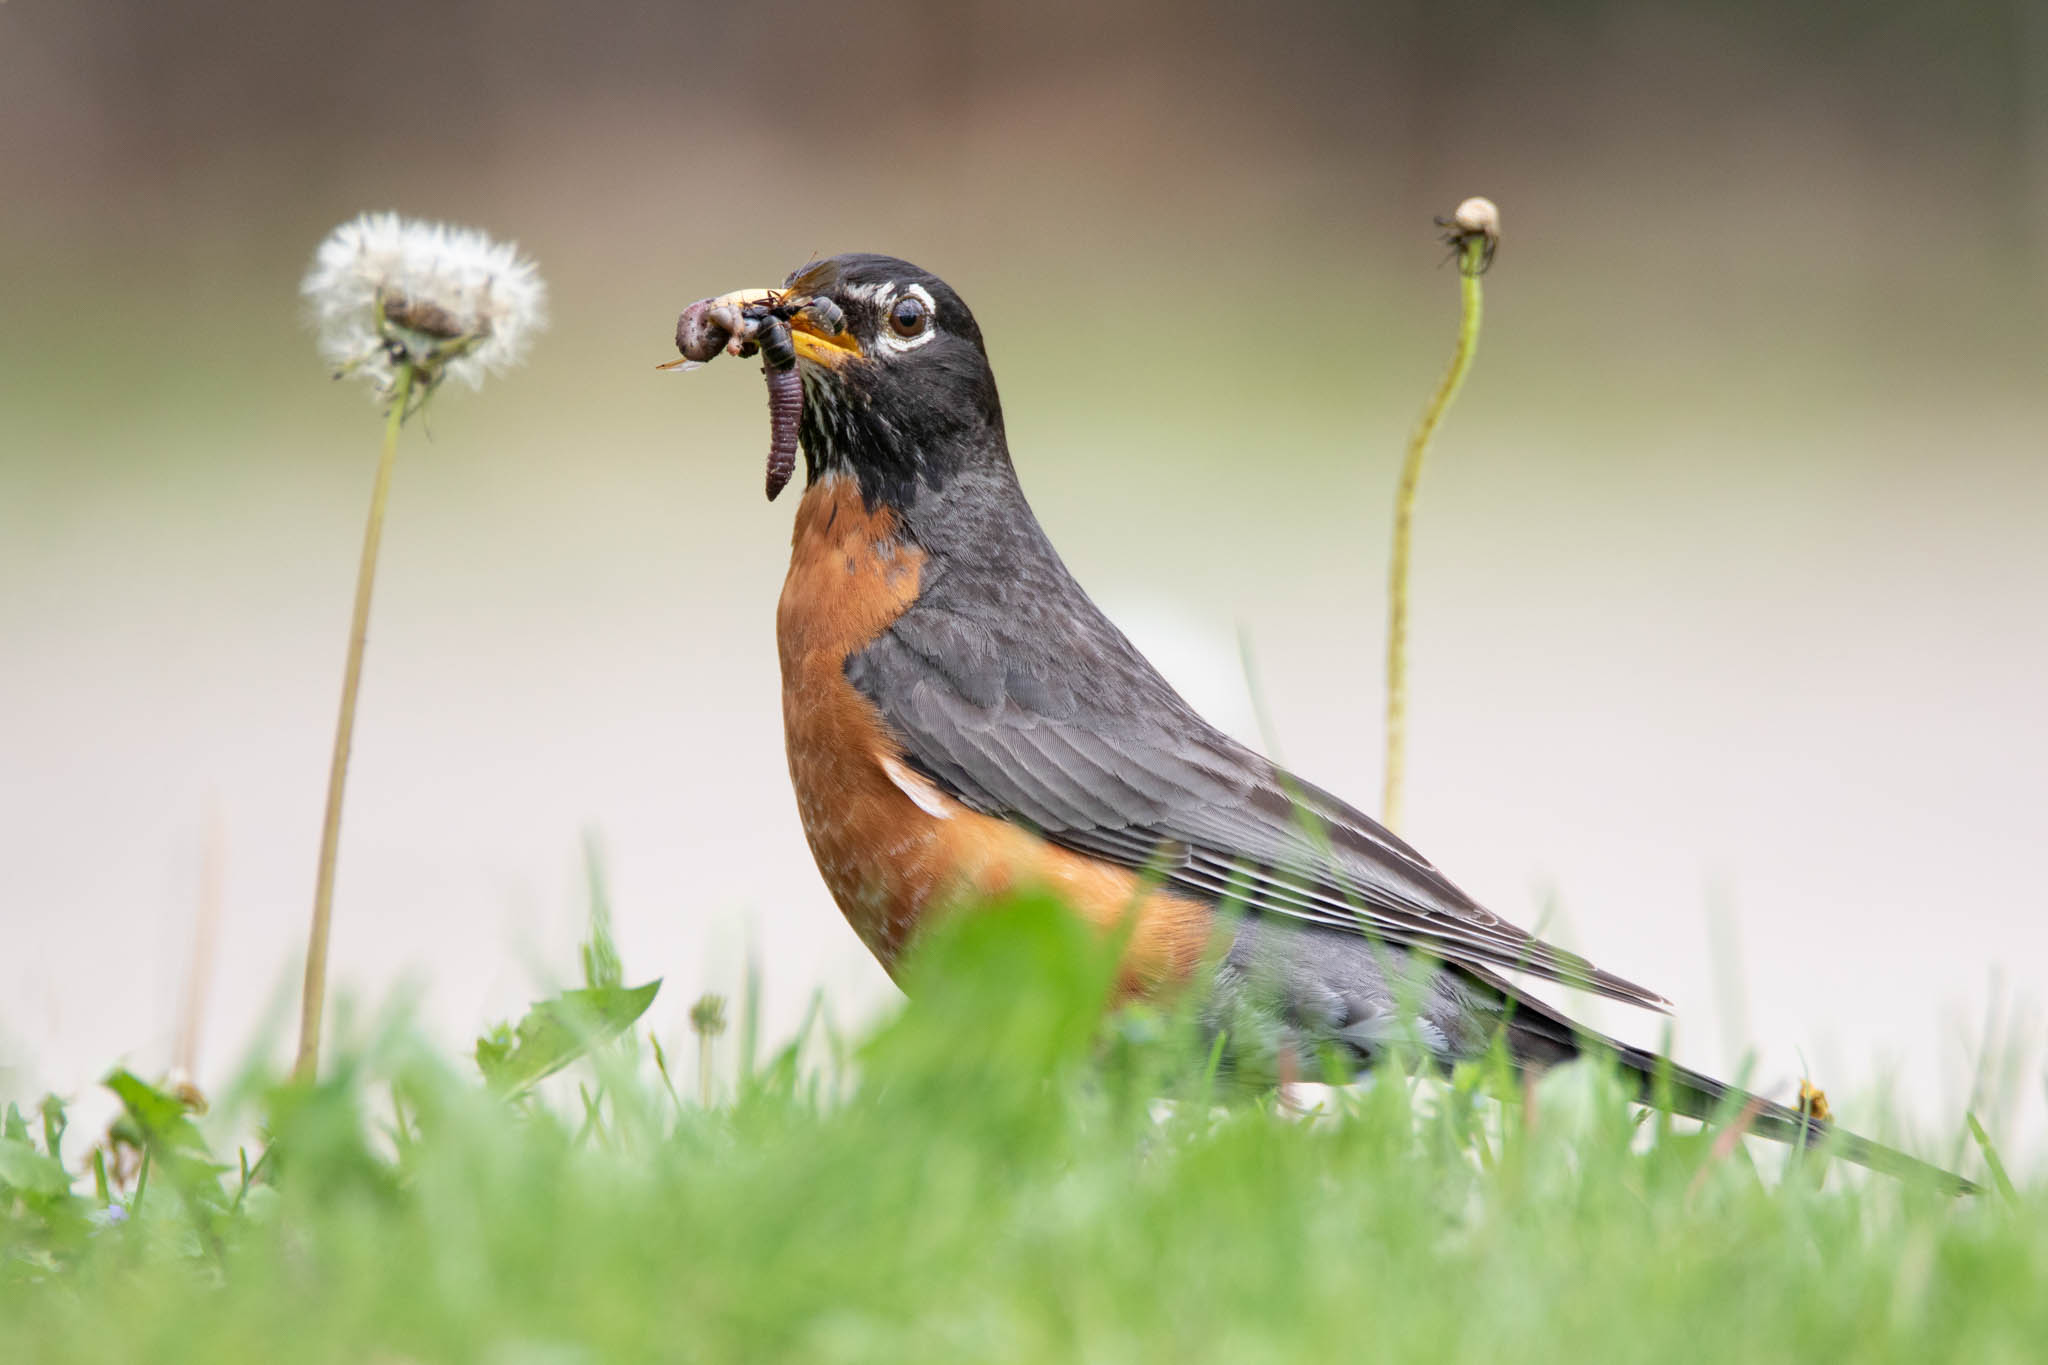 Robin eating a worm, Meal by Jayme Spoolstra, Photography Scavenger Hunt